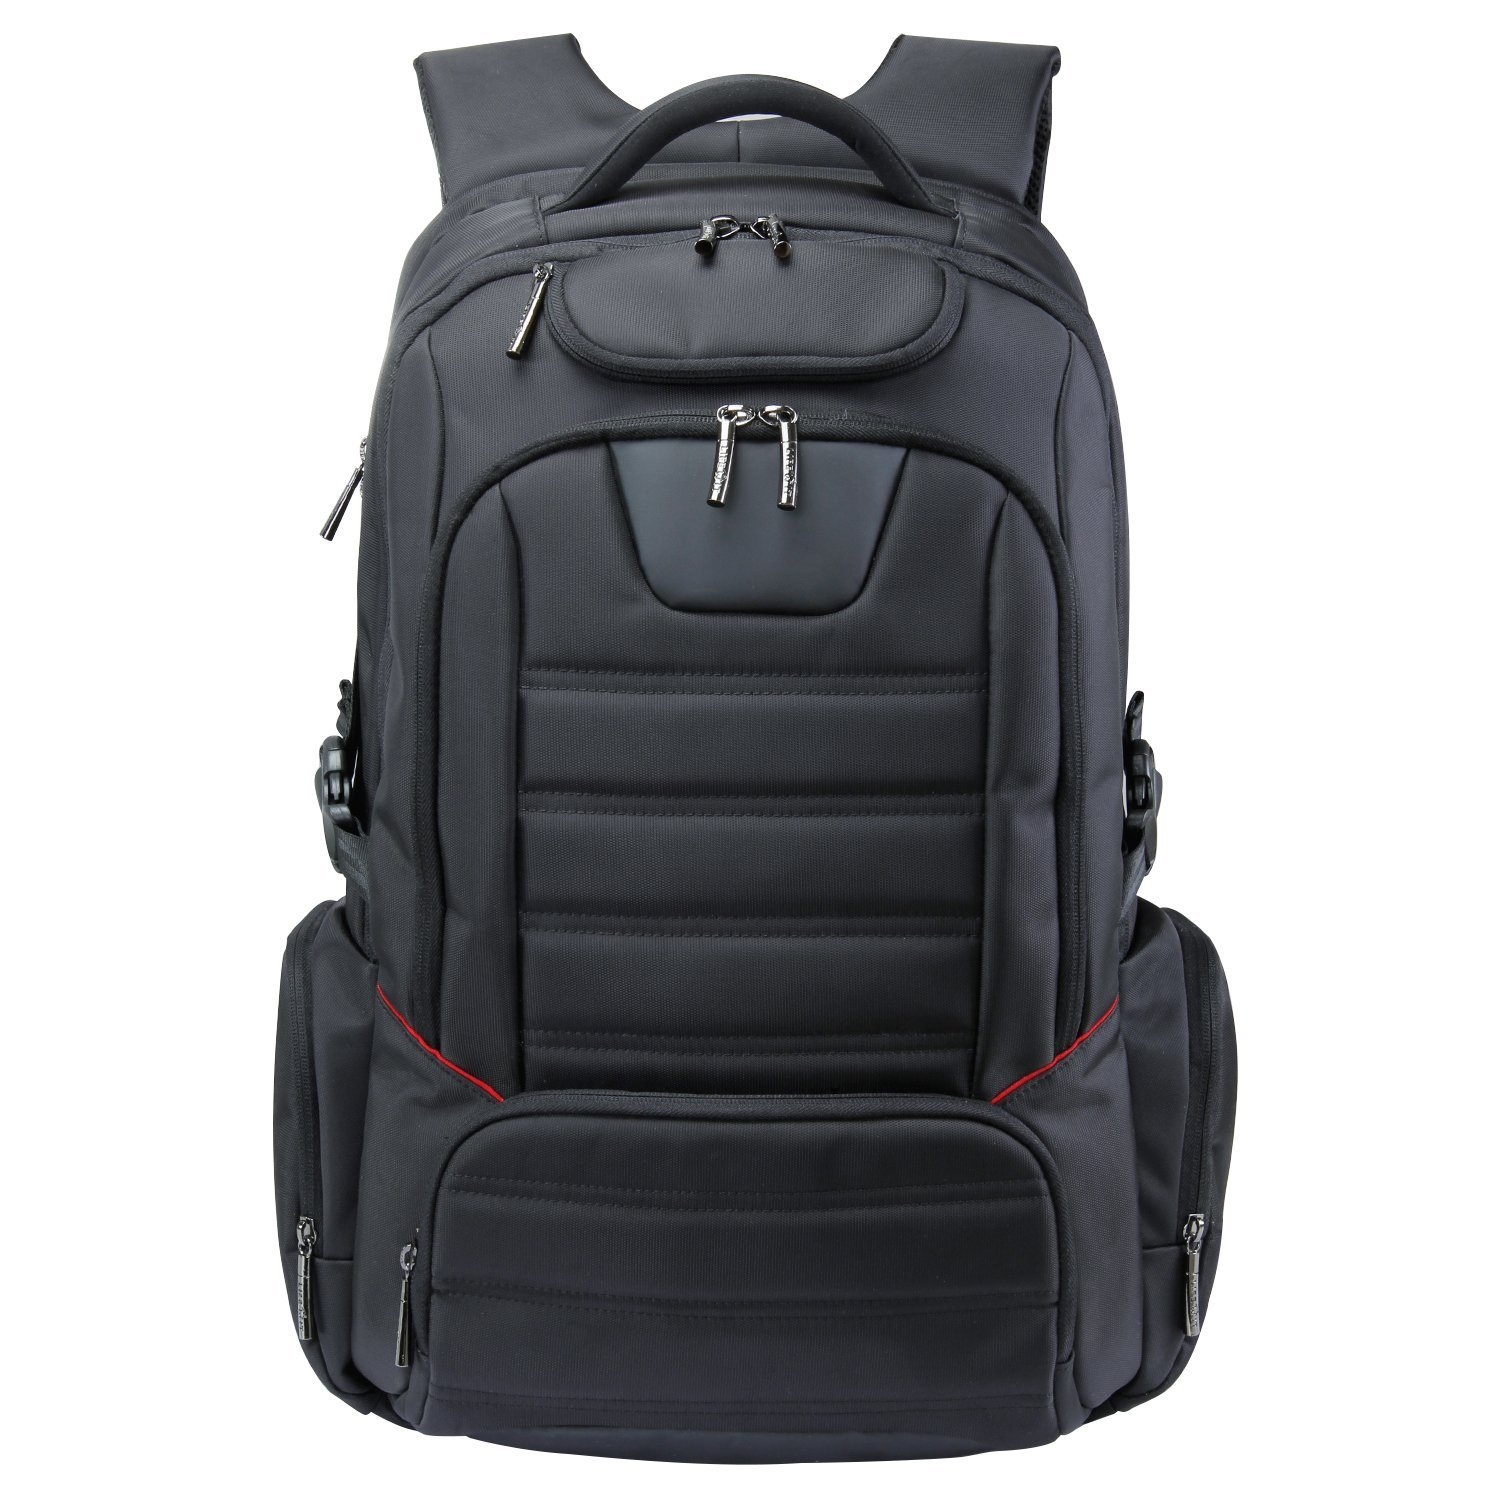 """Lifewit Men Large Laptop Backpack Water Resistant Travel School Business College Computer Bag Carry-on Fits Up to 17.3-18.4 Inch, Black (18.4"""" Black)"""